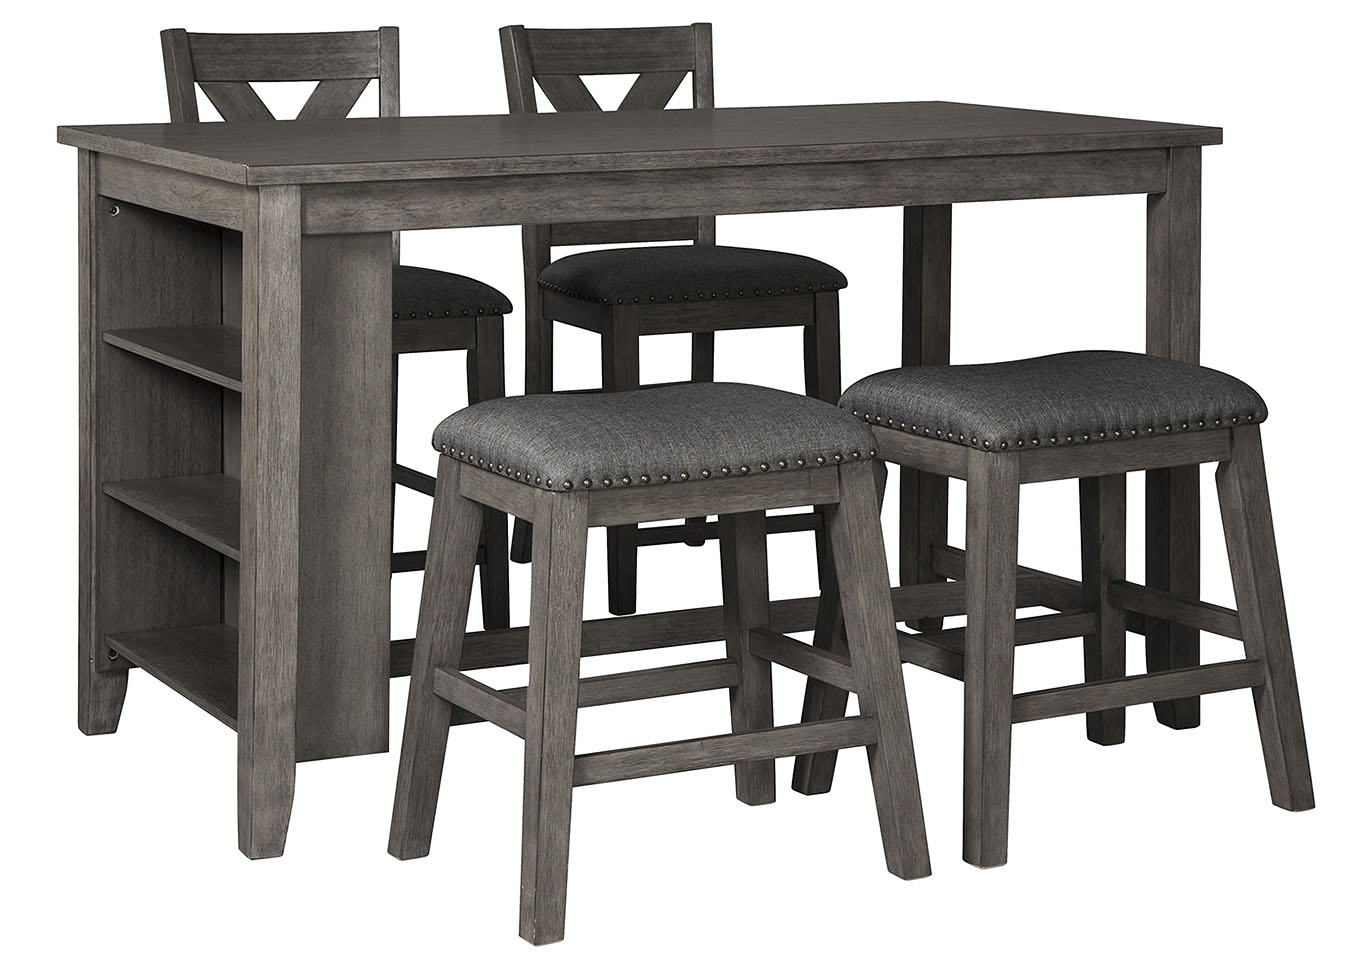 Caitbrook Dark Gray Dining Set w/2 Stools & 2 Bar Stools,Signature Design By Ashley